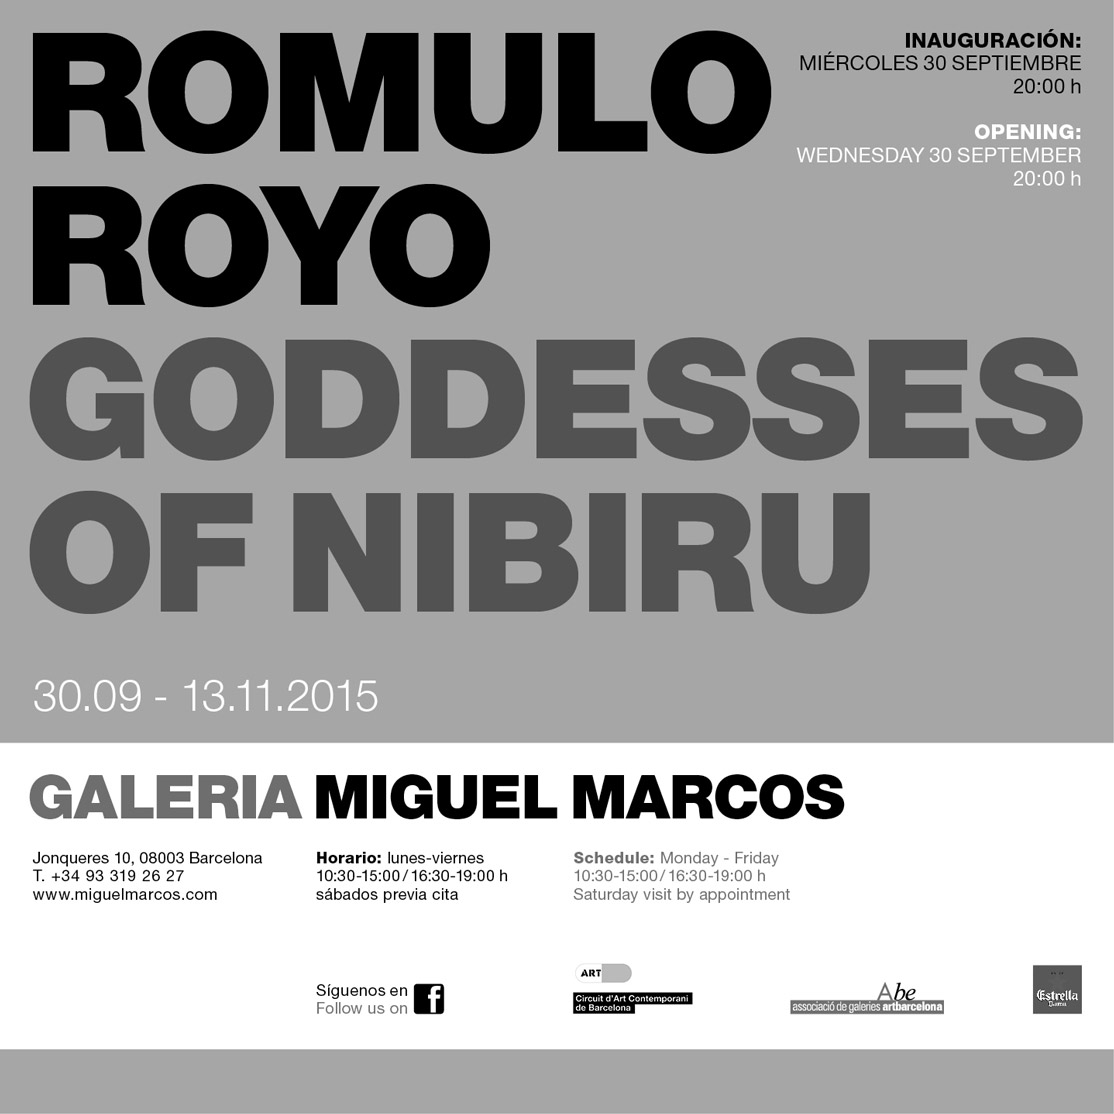 Invitation for the exhibition Goddeses of Nibiru 2015